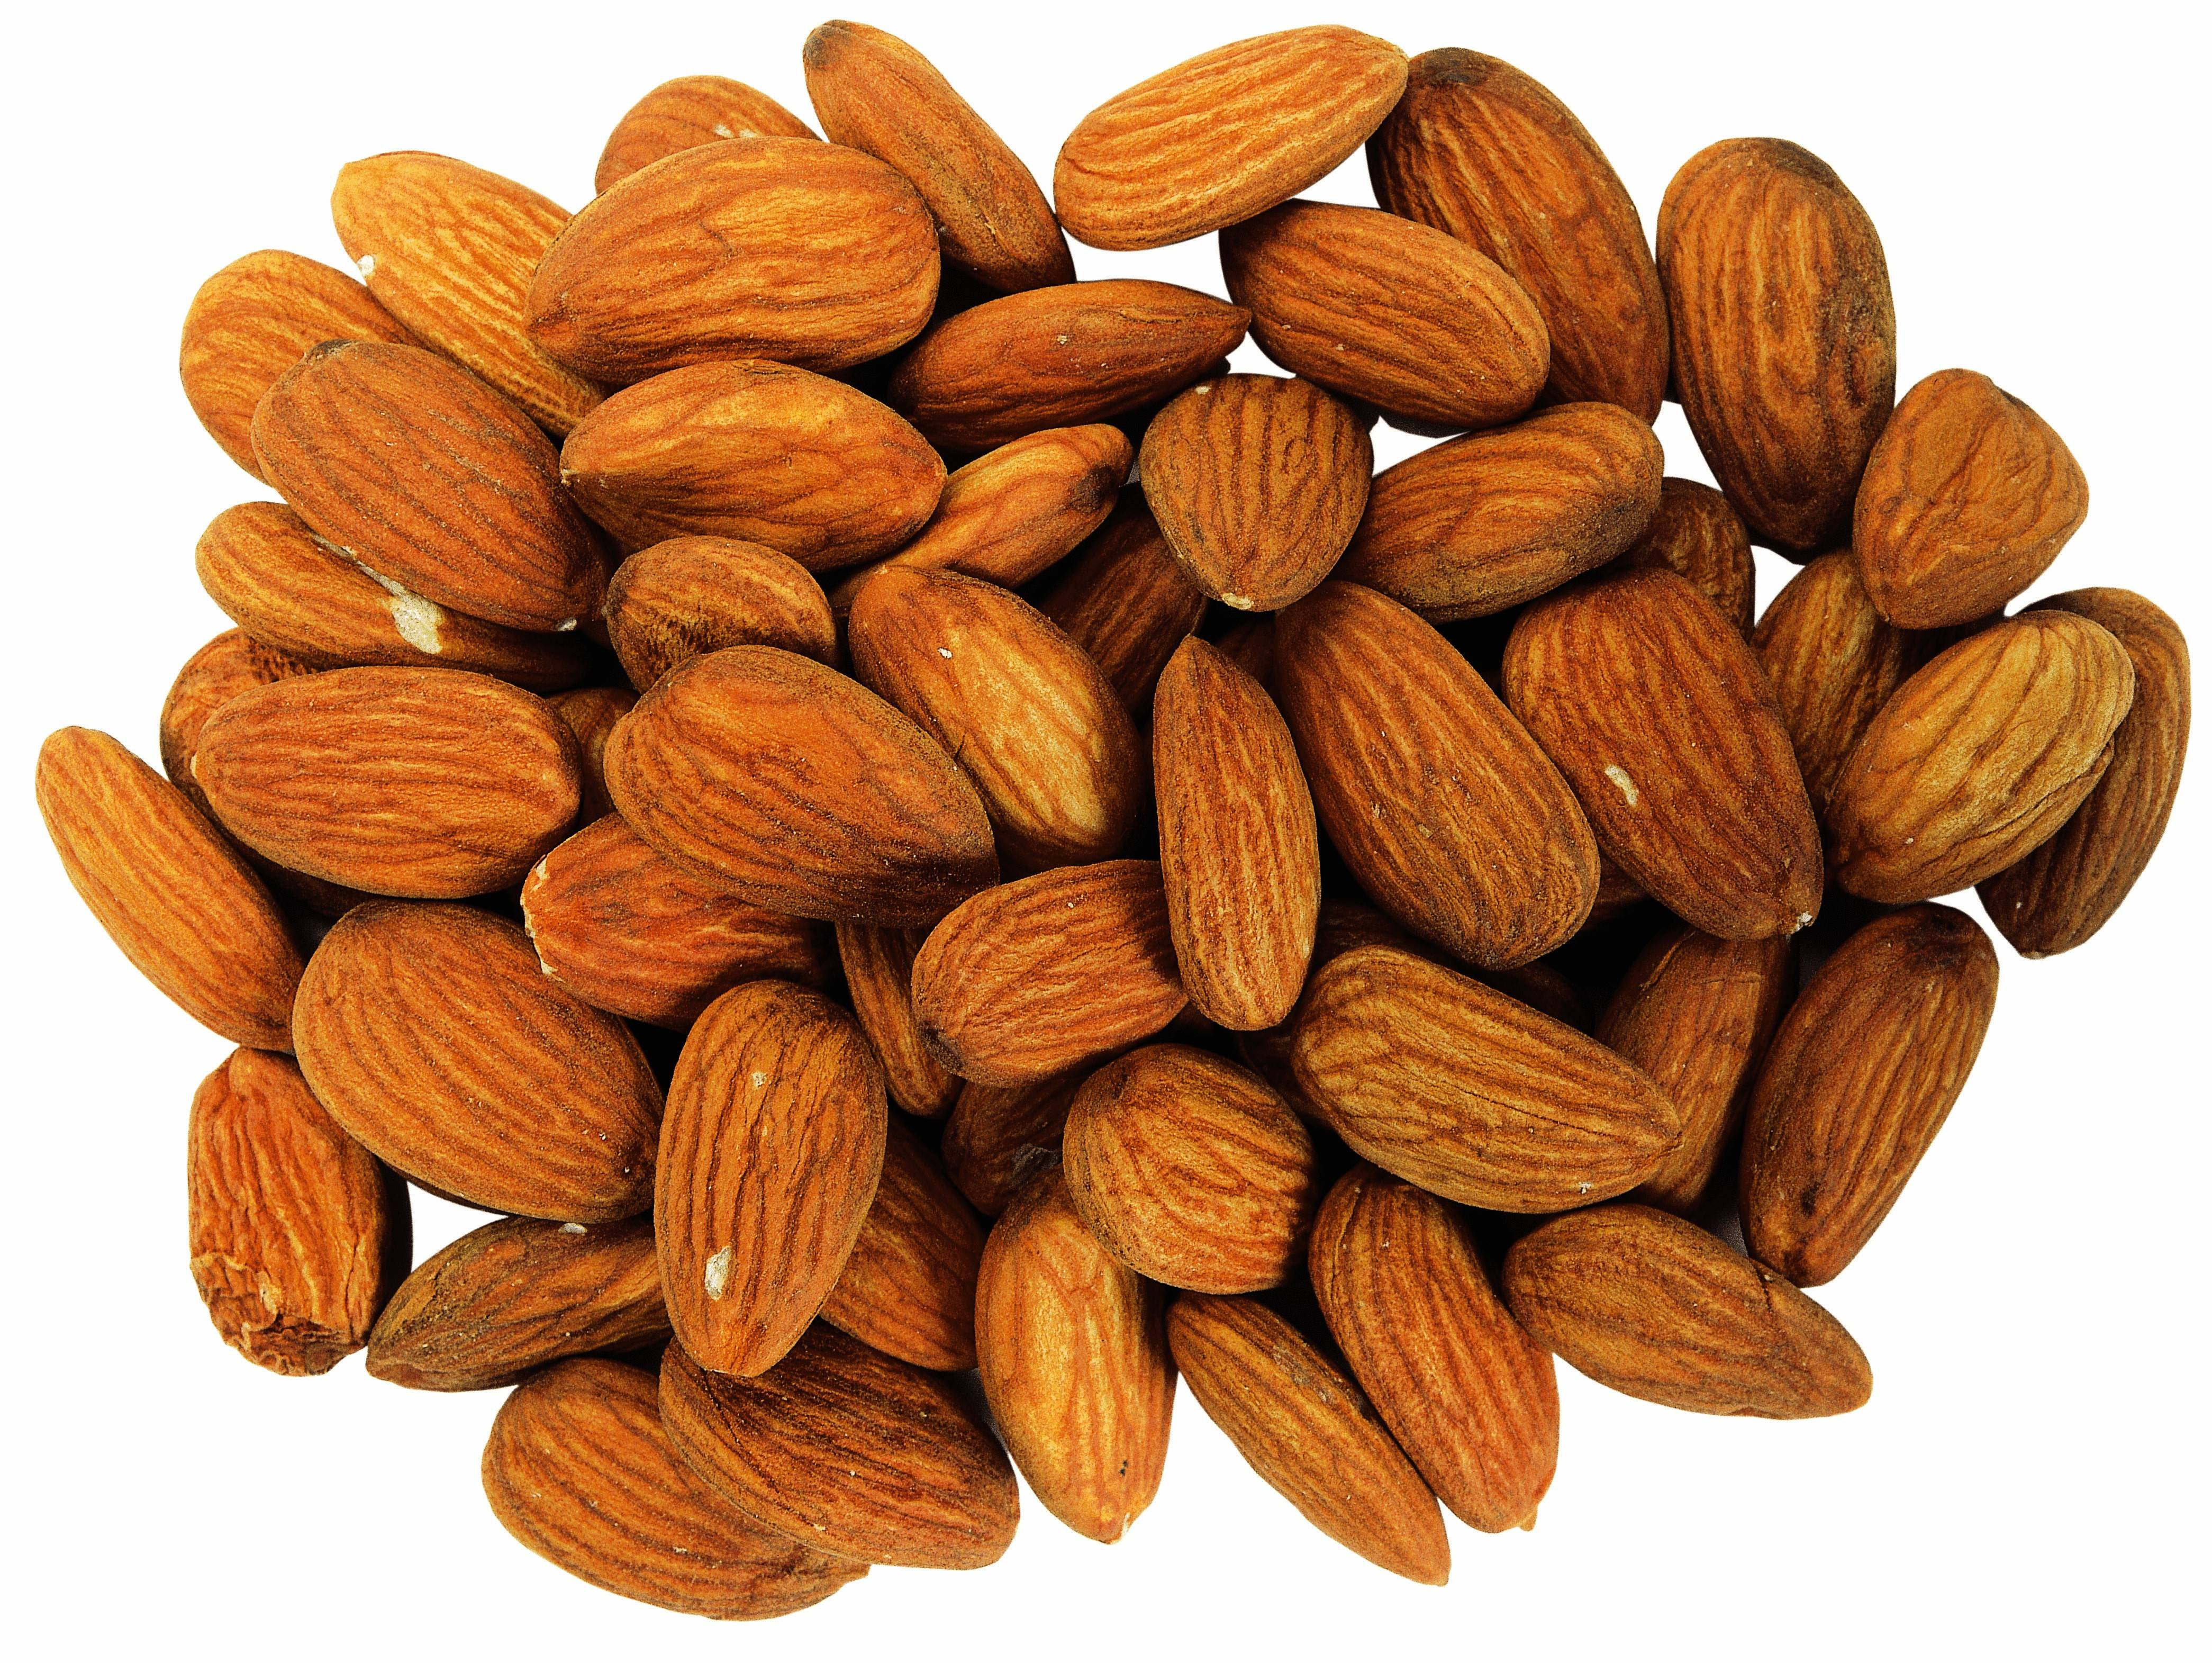 Almonds protect your heart with omega-3 fatty acids, vitamin E, fiber and other benefits.